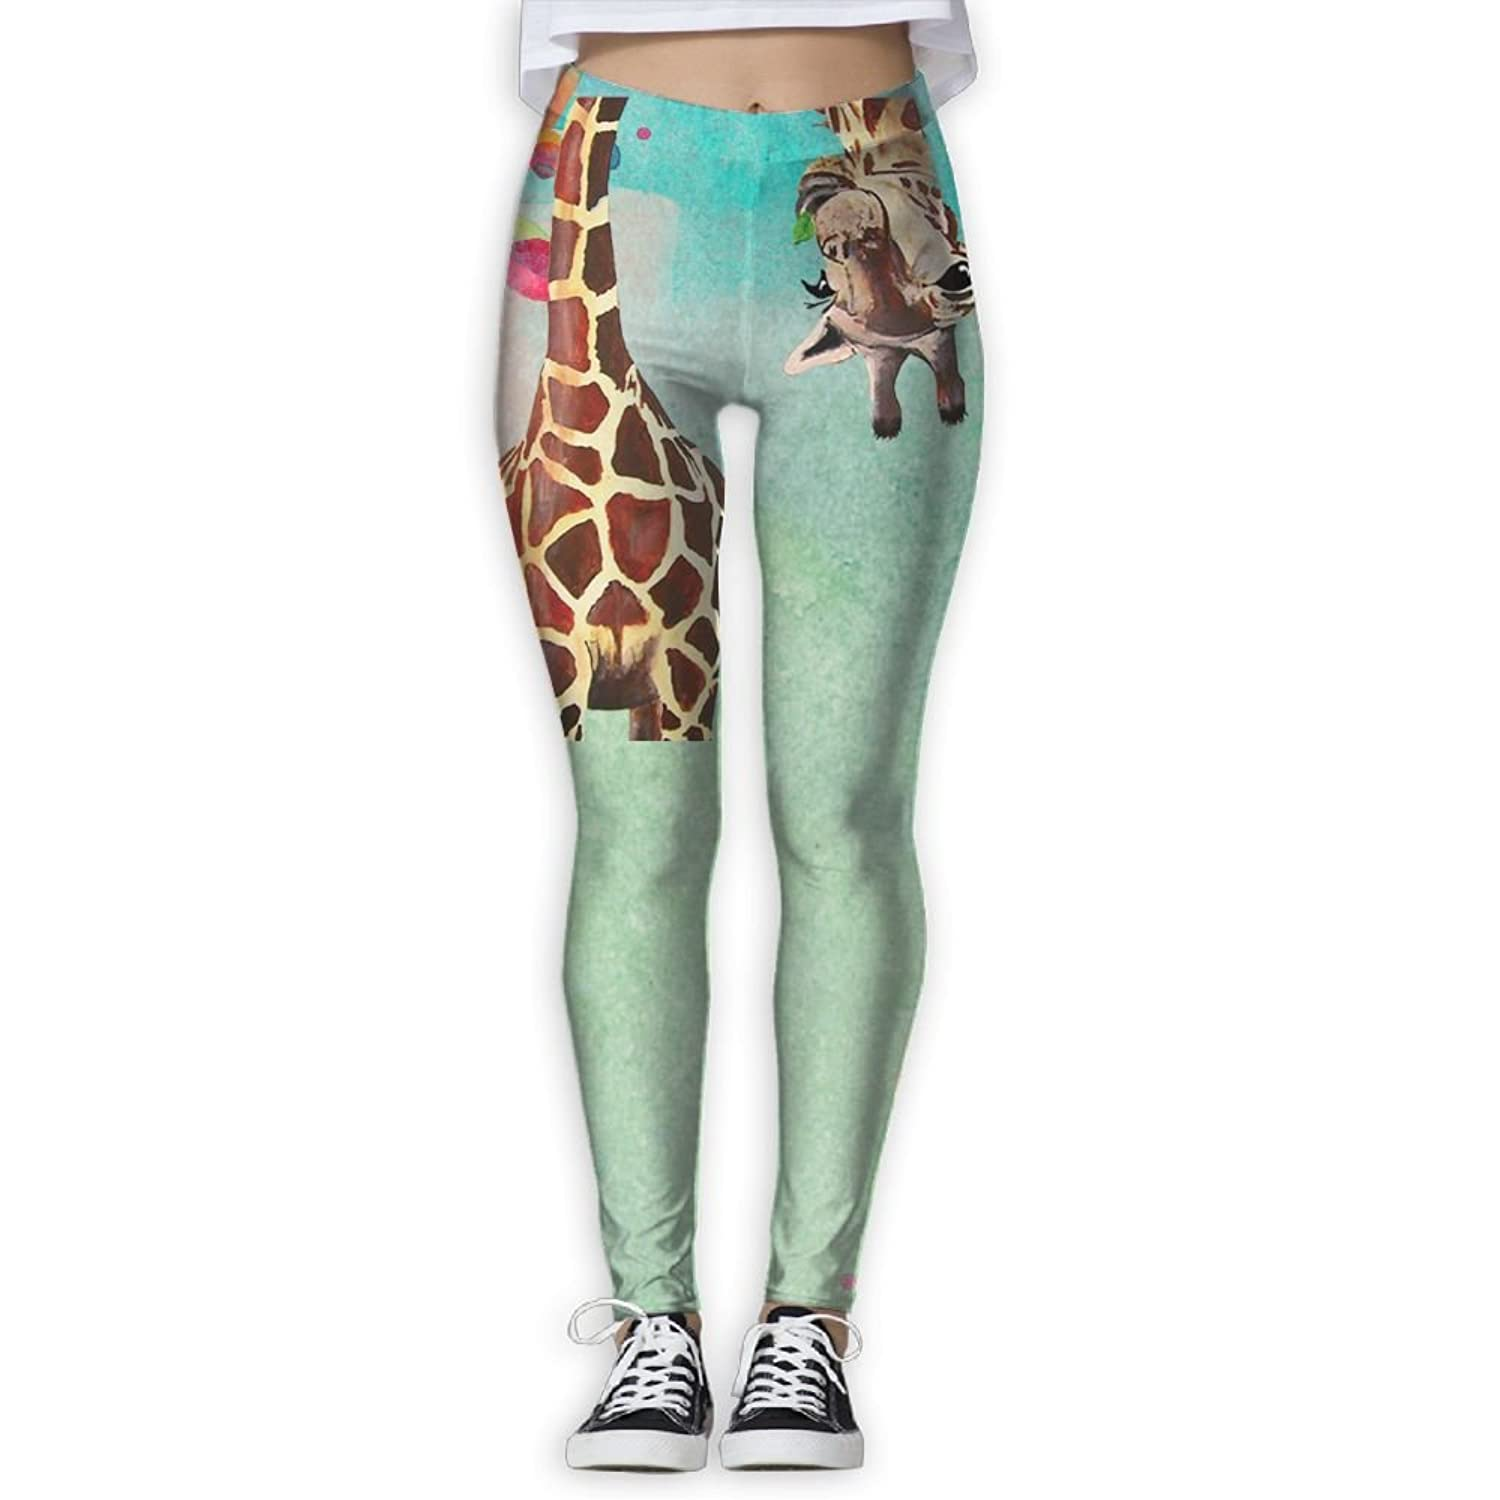 A Giraffe Bent Down Women's Fitness Sport Digital Printed Yoga Pants